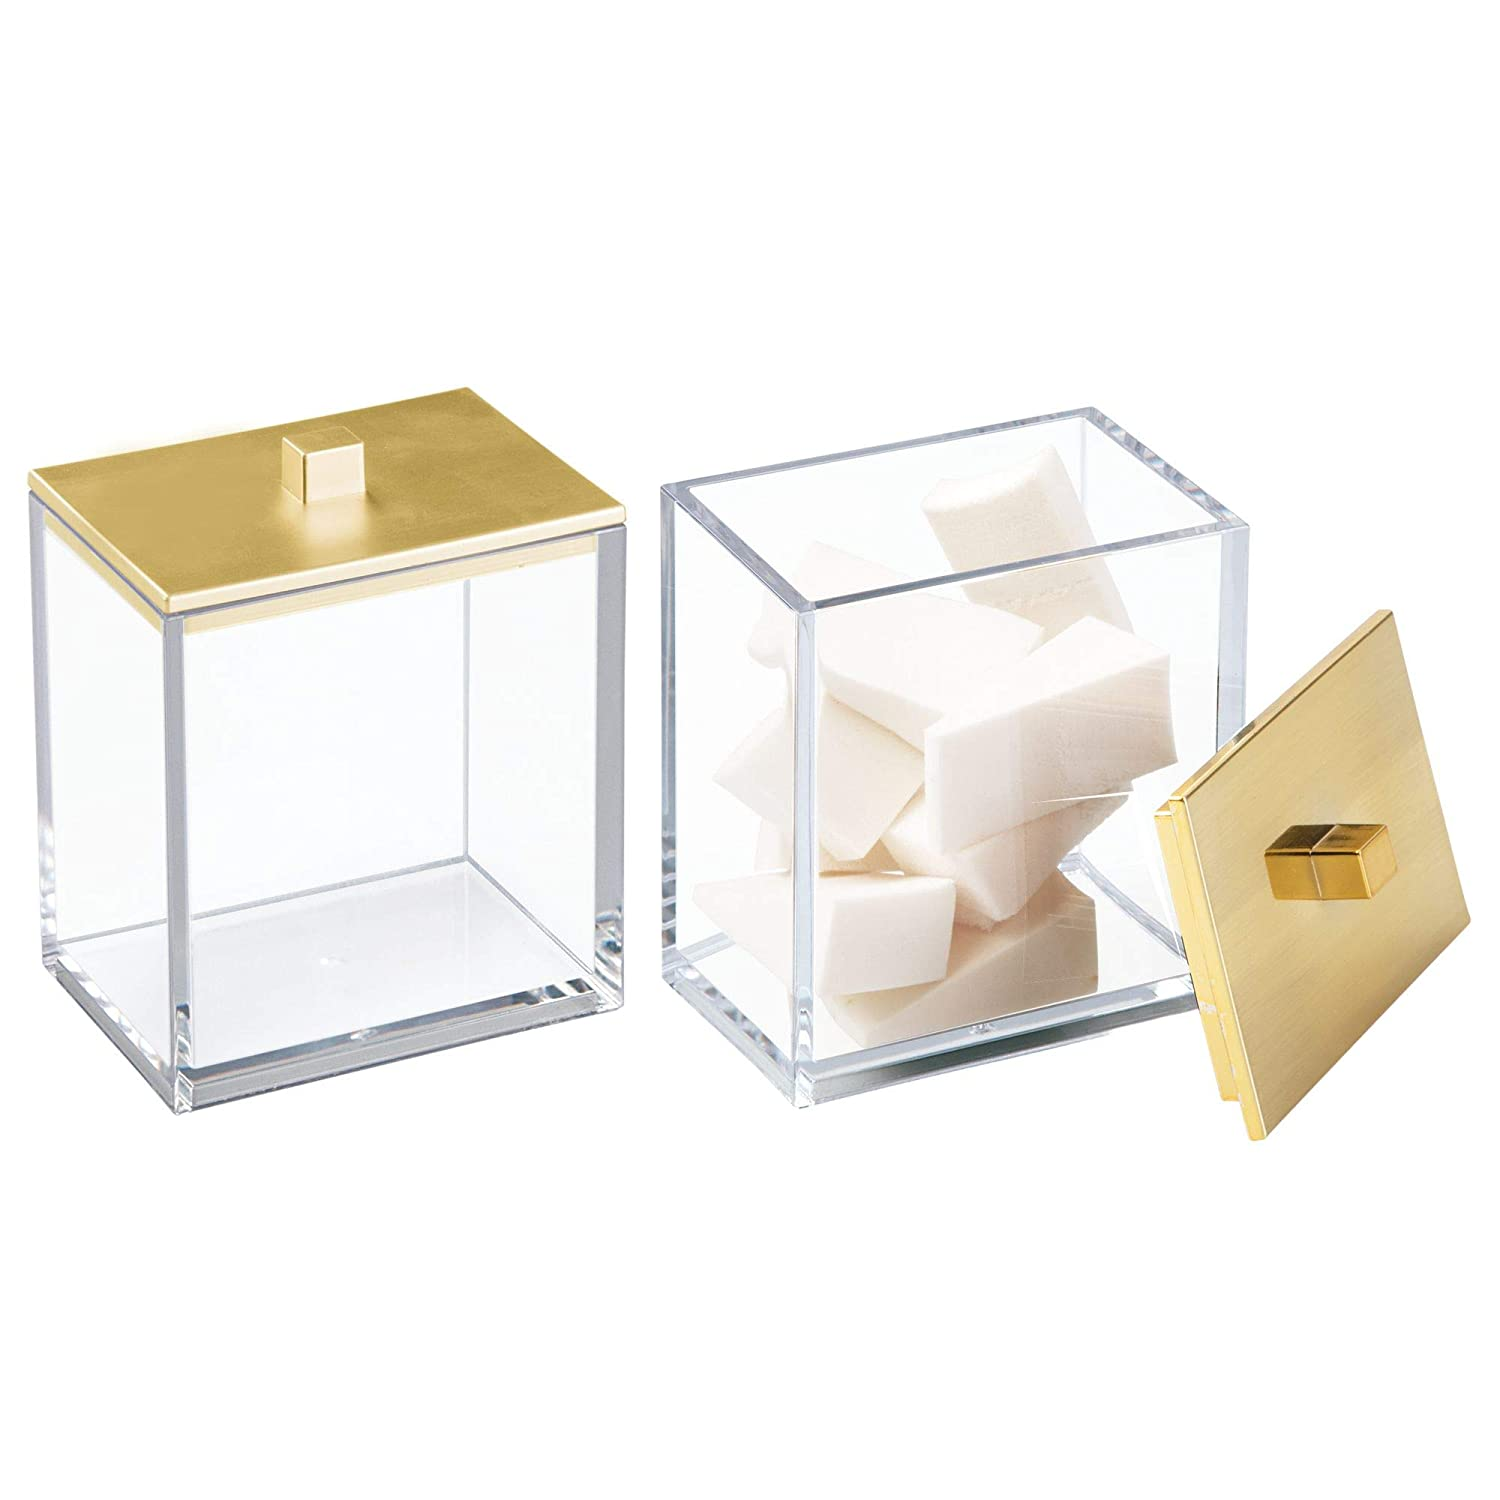 mDesign Modern Square Bathroom Vanity Countertop Storage Organizer Canister Jar Cotton Swabs, Rounds, Balls, Makeup Sponges, Beauty Blenders, Bath Salts - 2 Pack, Clear/Gold Lid